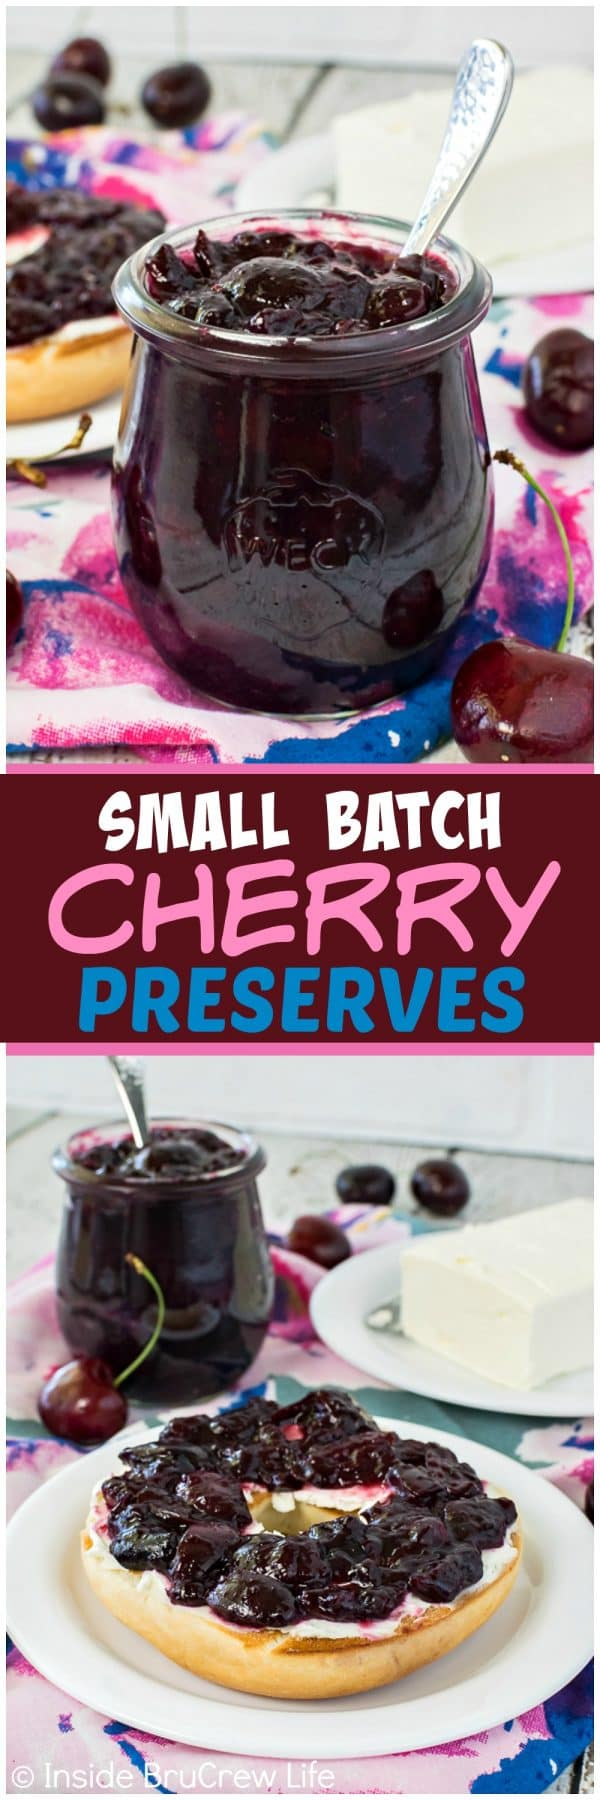 Small Batch Cherry Preserves - simmer down fresh berries and honey to make a jar of delicious preserves. This easy homemade recipe is perfect for eating on bagels or toast!